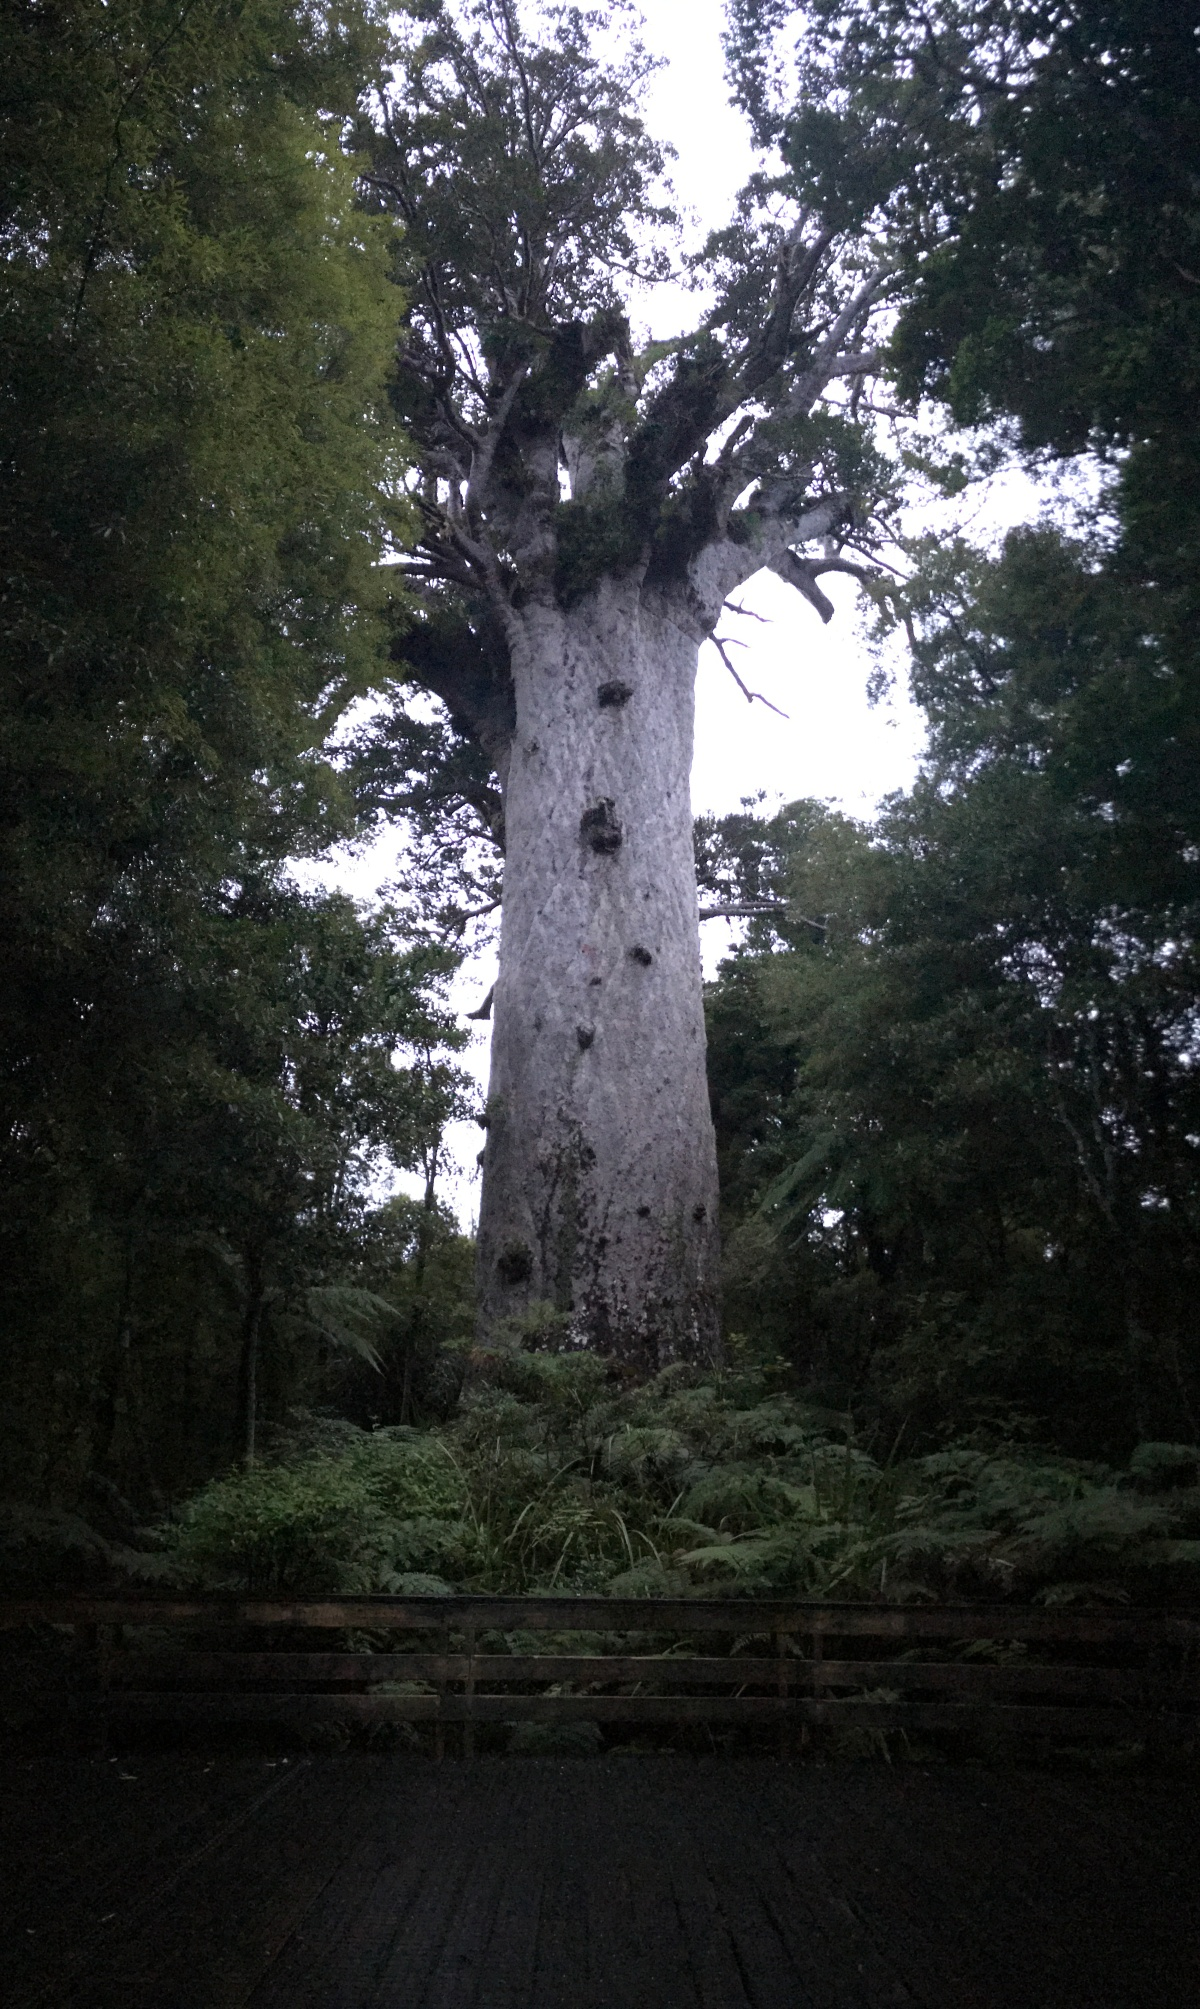 Day 8 and 9 – History, Culture and Giant Trees in the Northland